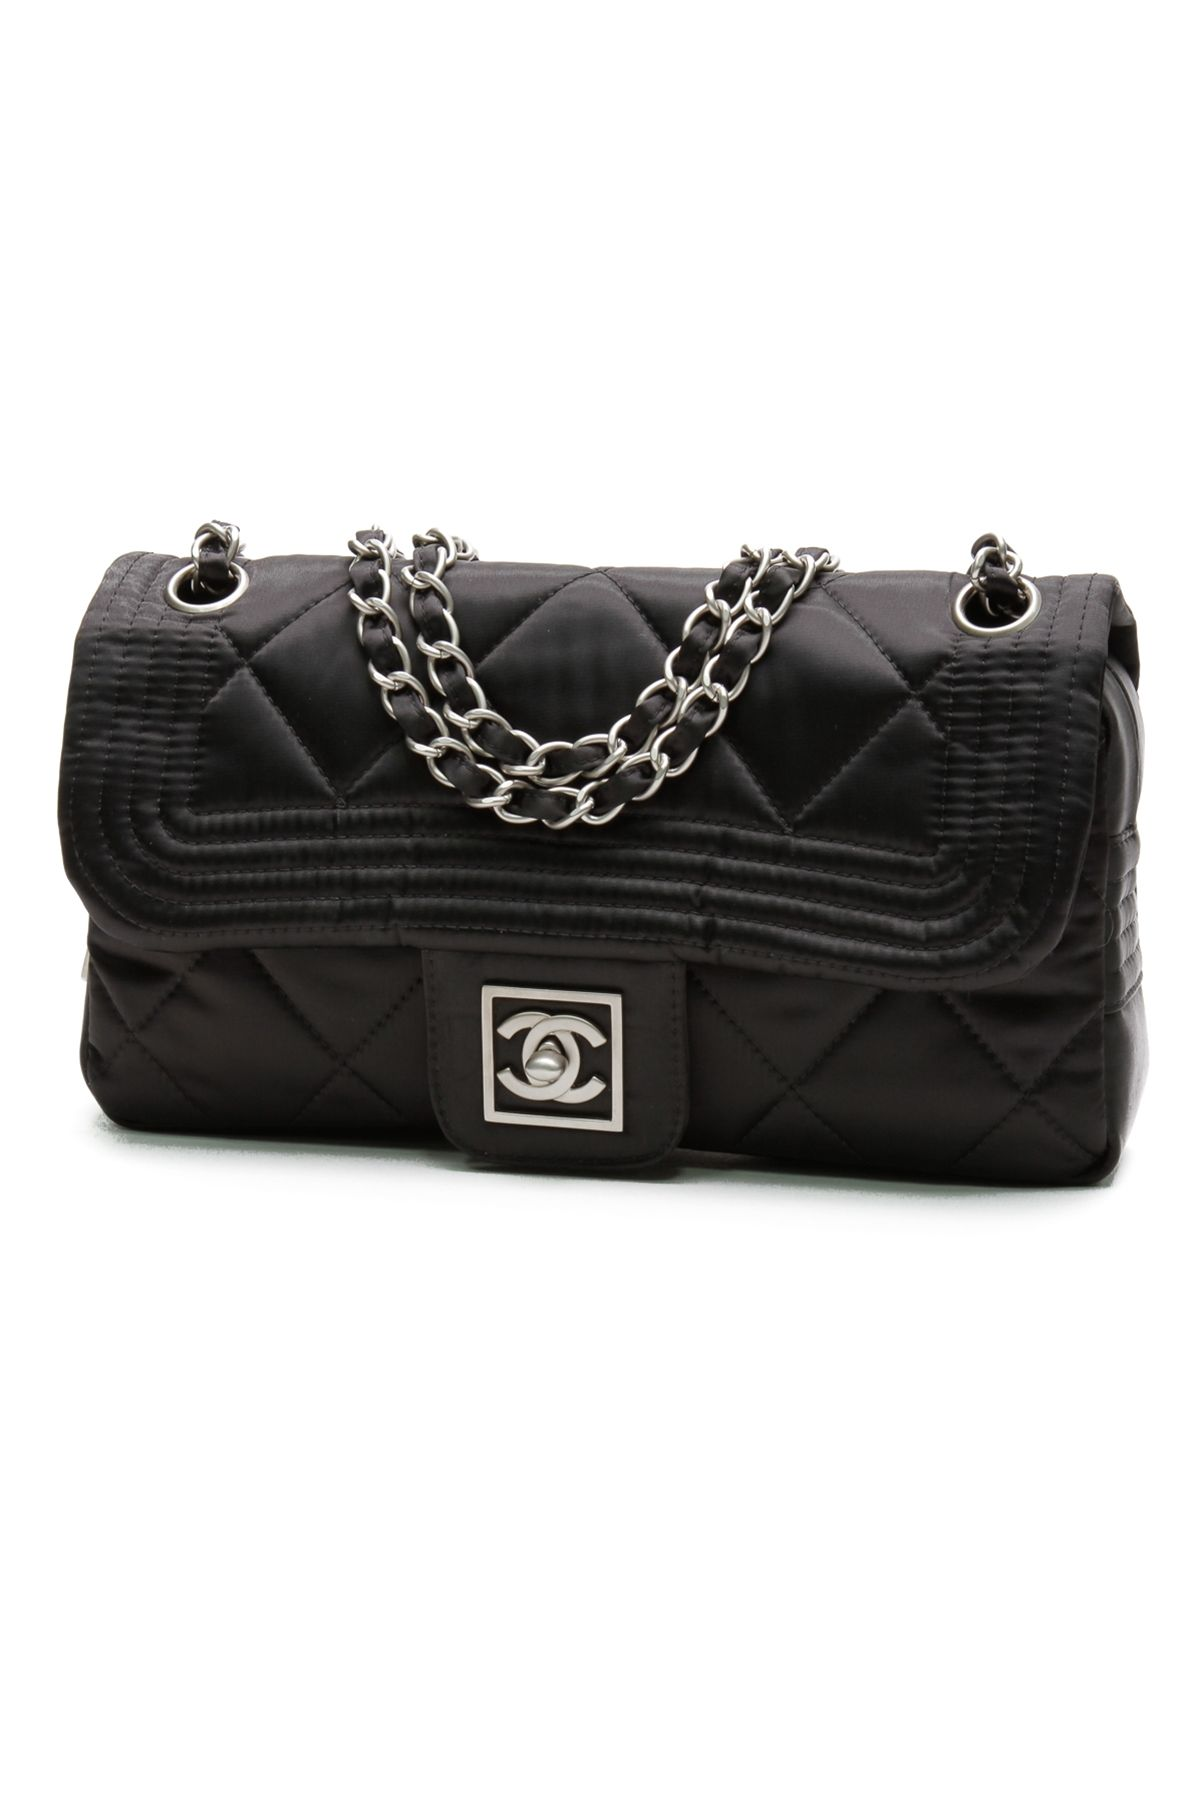 0a50dcb09d41 Chanel Black Quilted Sport Nylon Ski Collection Flap Handbag